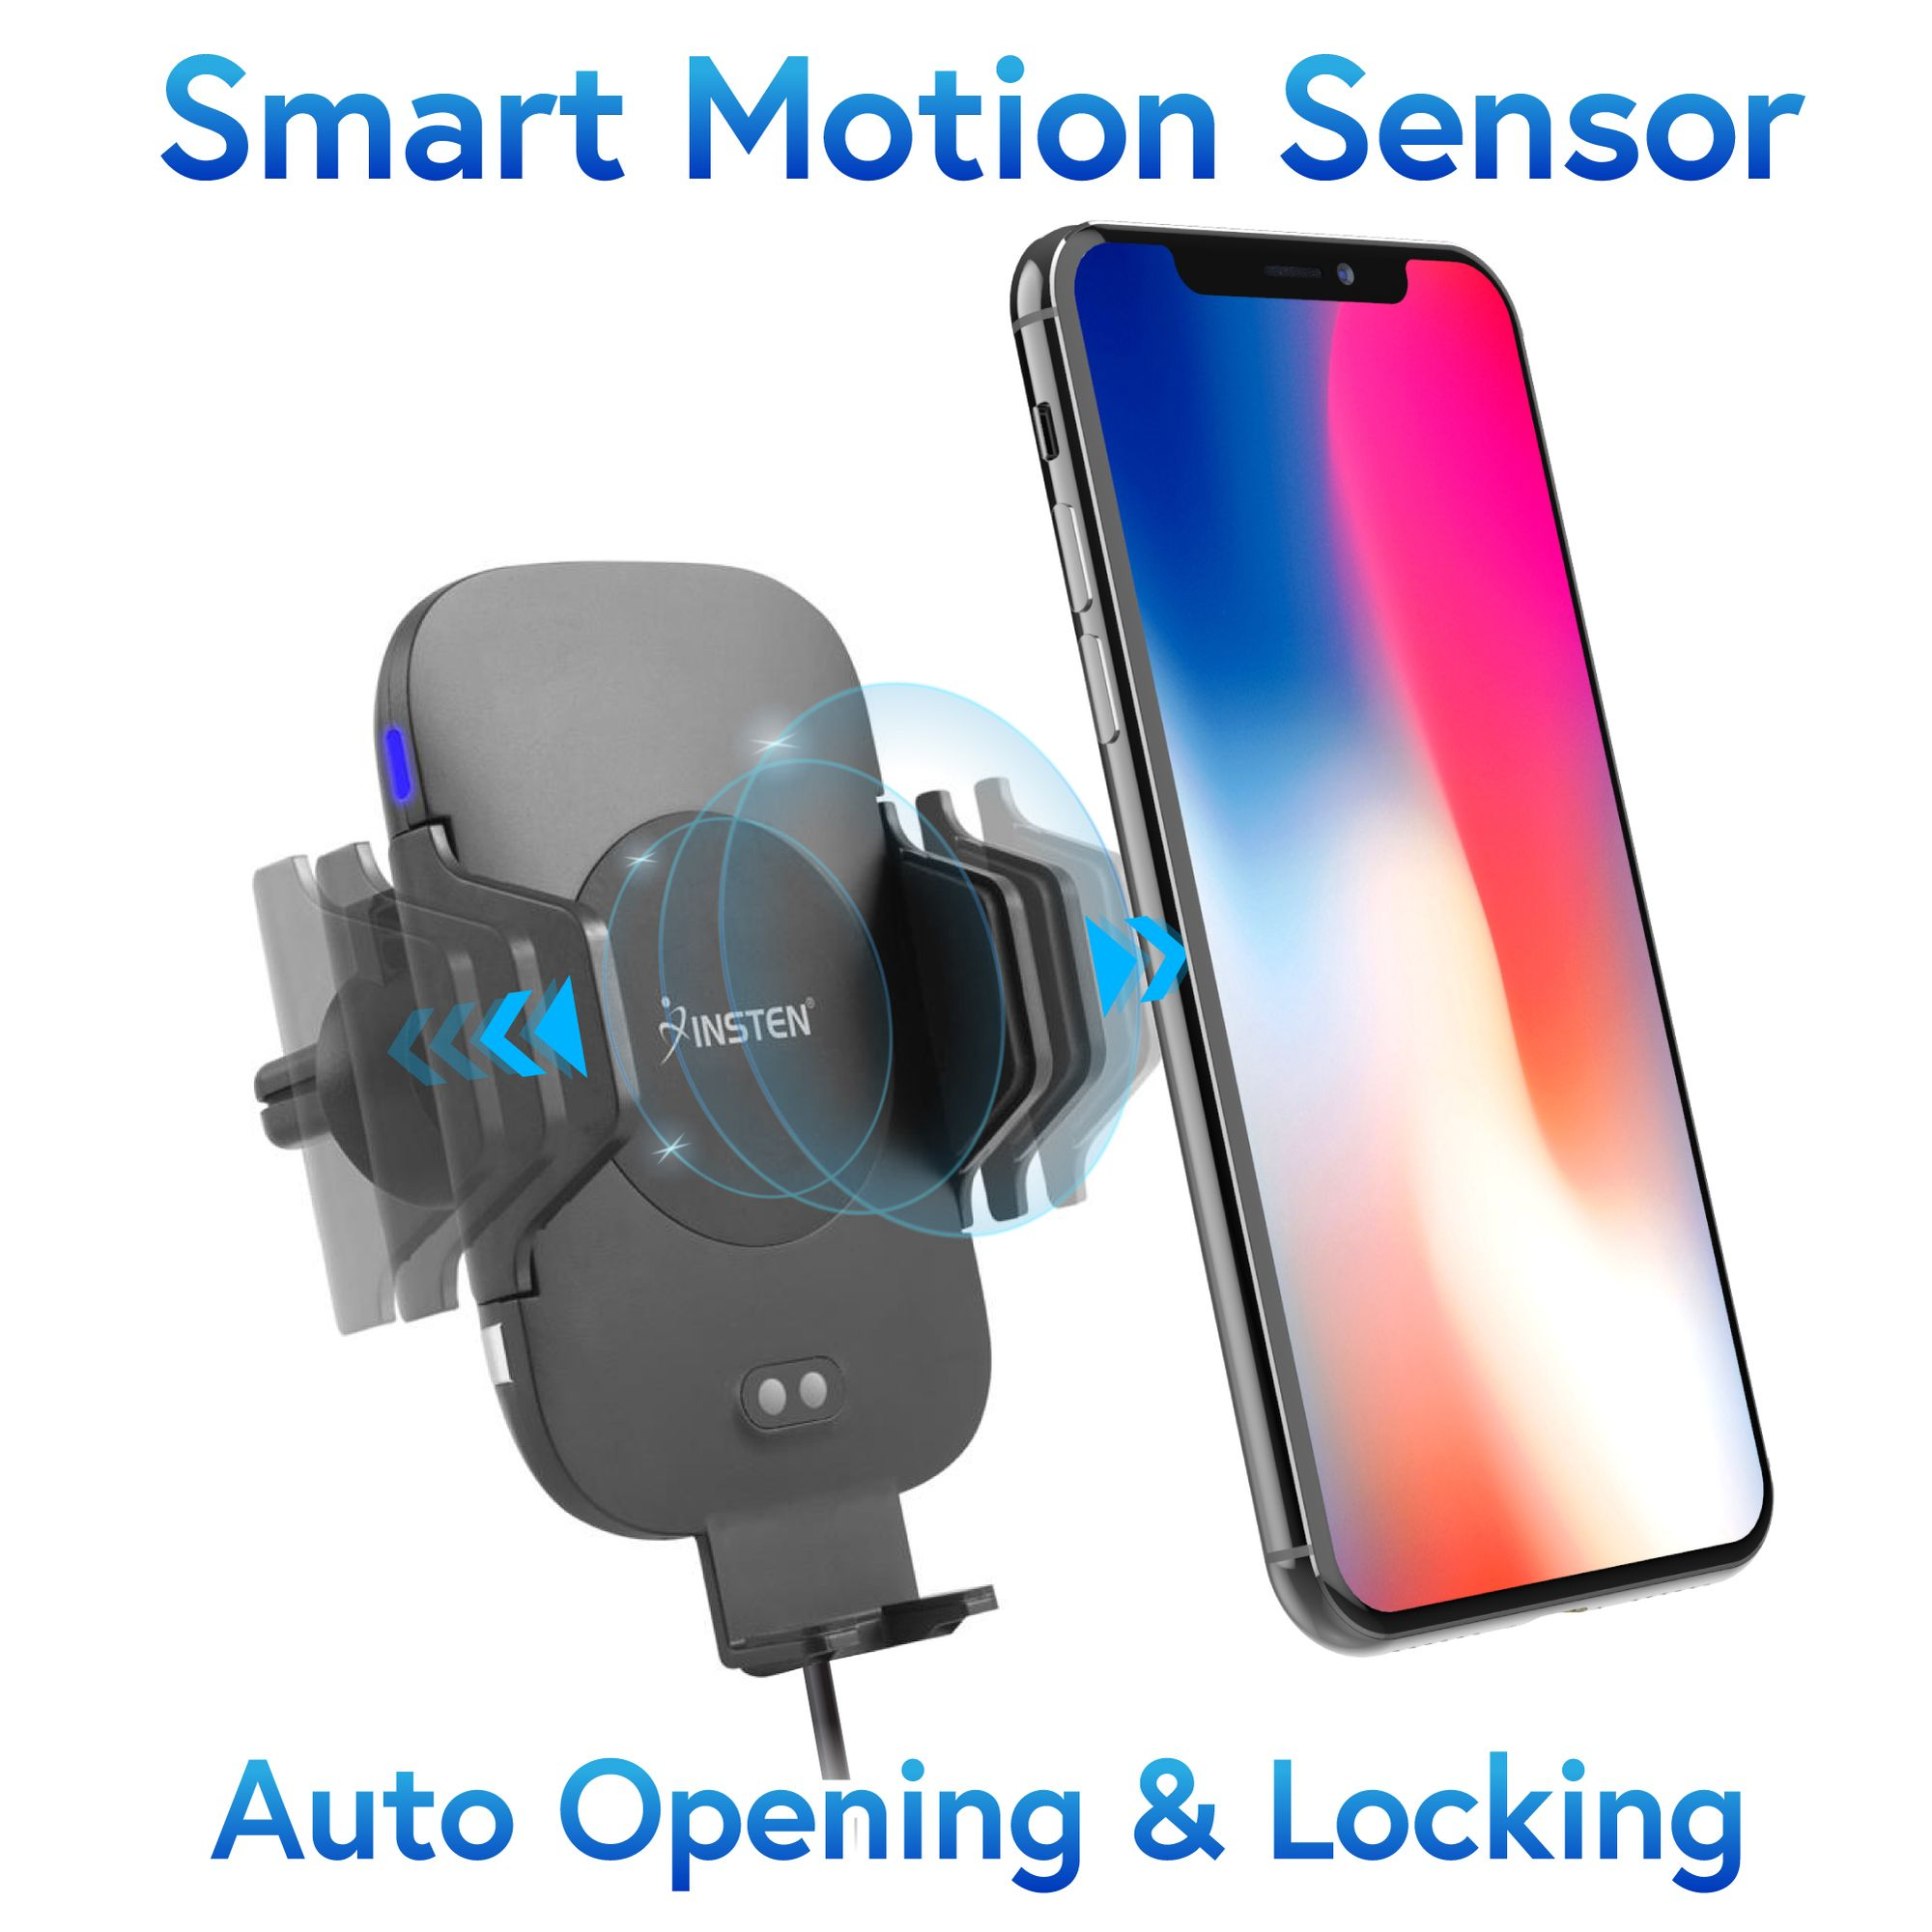 Insten Infrared Motion Sensor Auto Open & Clamp Air Vent Cell Phone Holder Cradle with Fast Wireless Charging Pad for Apple iPhone XS iPhone X 8 8+ 8 Plus